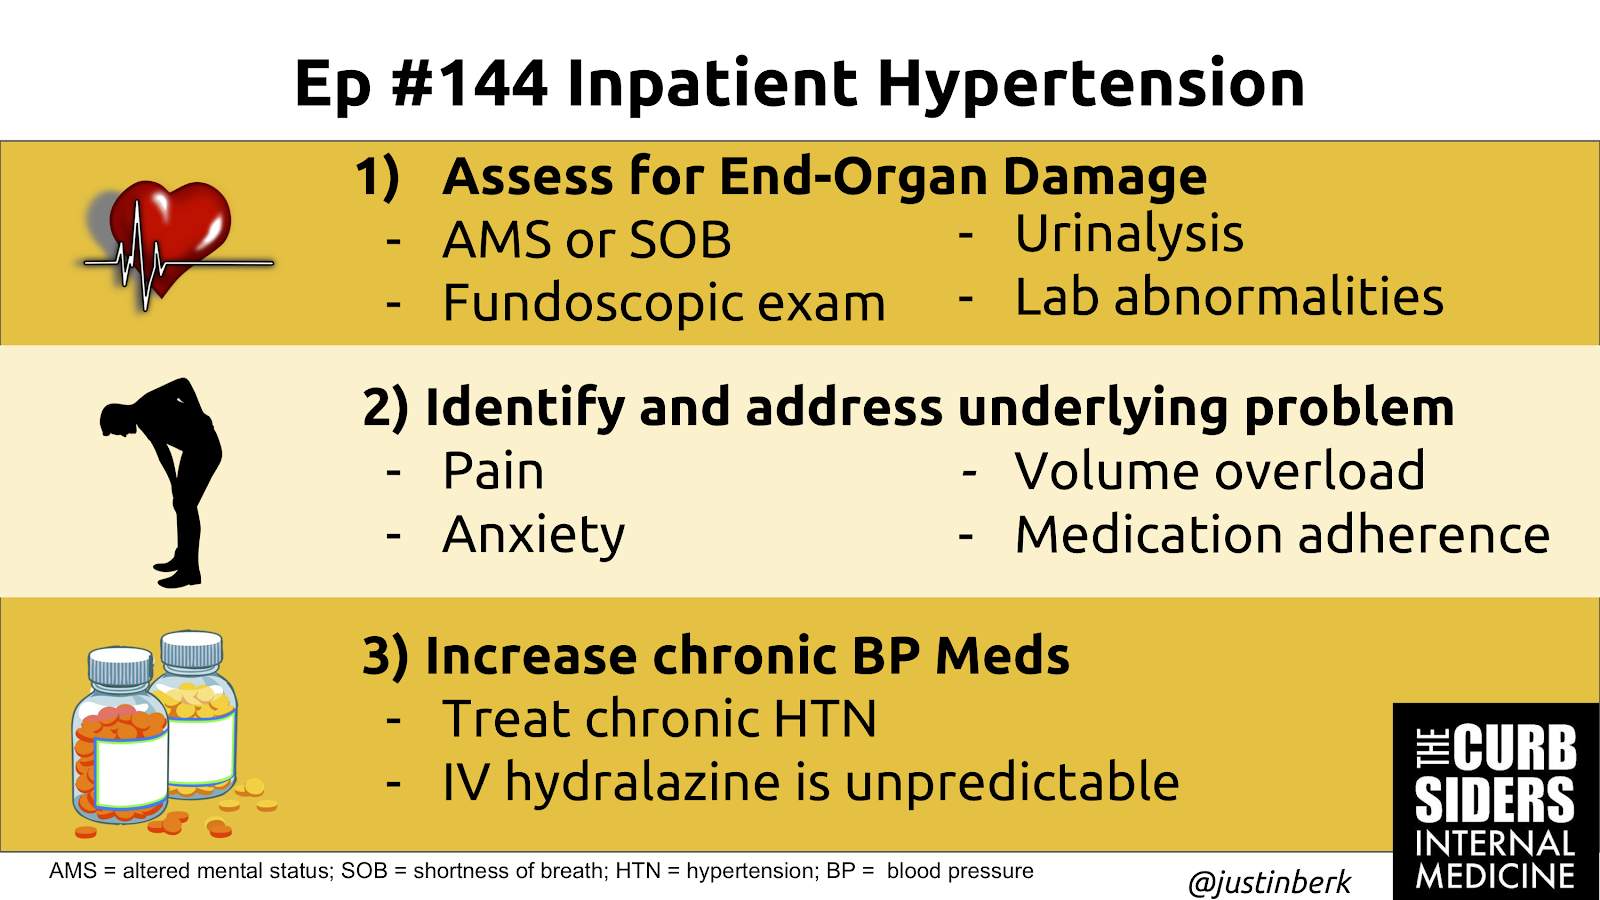 144 NephMadness: Inpatient Hypertension - The Curbsiders